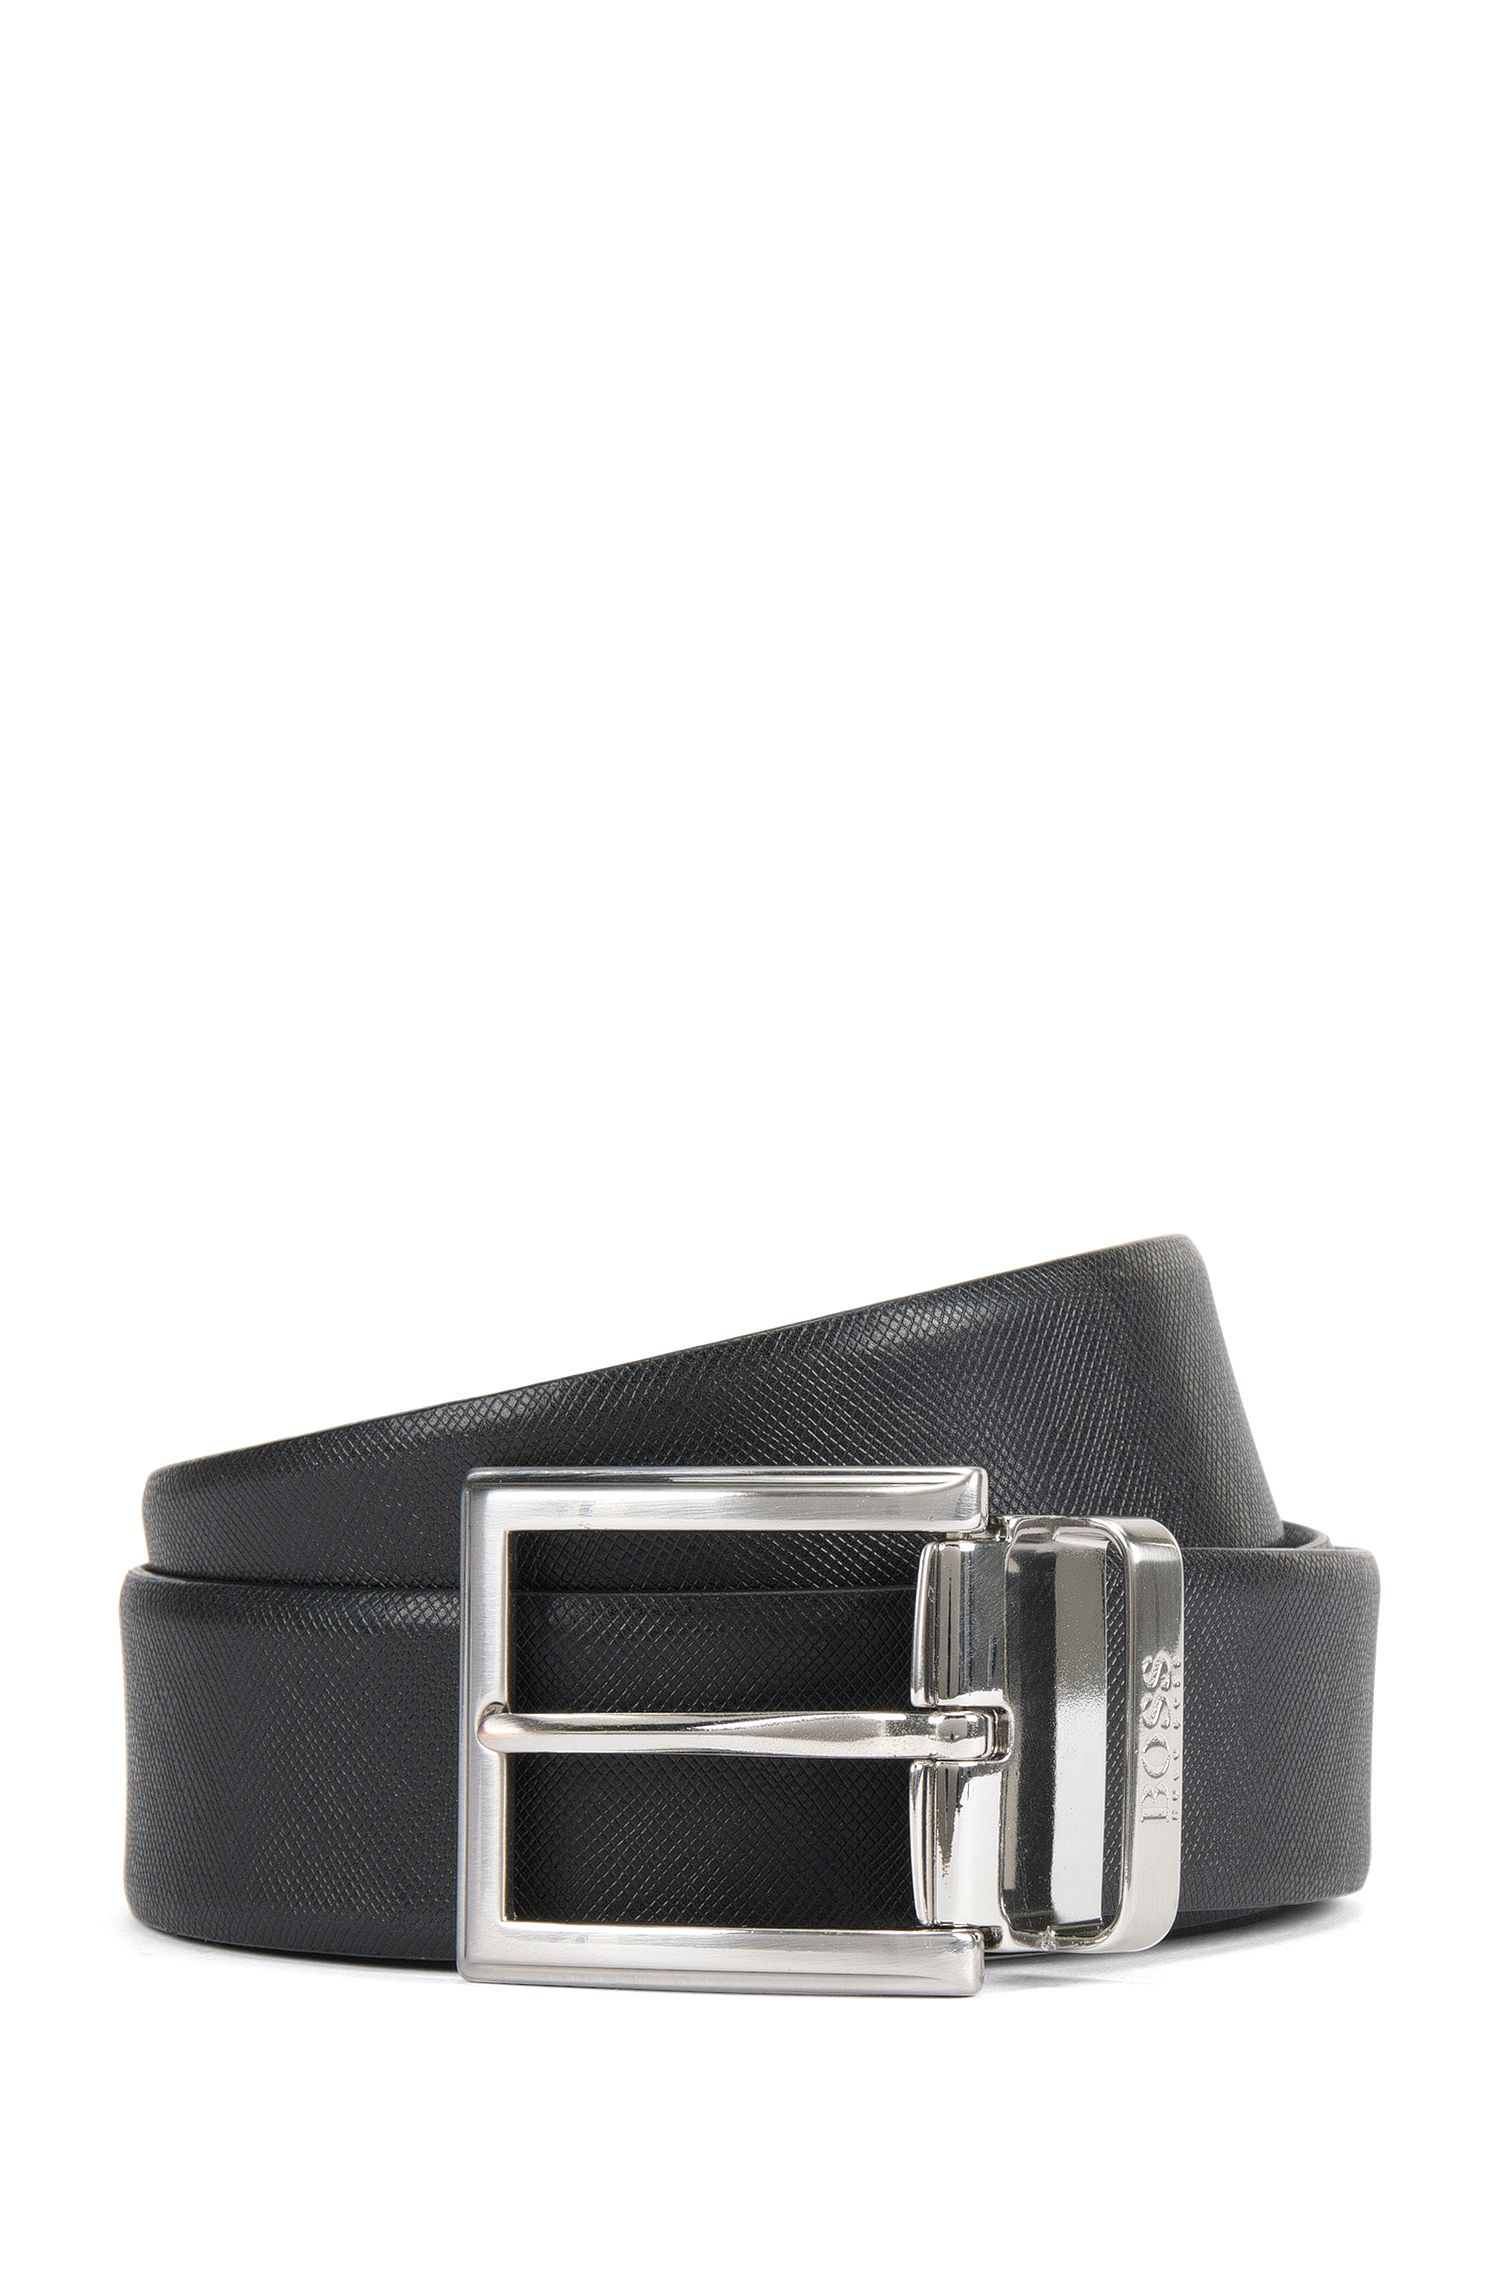 Reversible belt in textured leather